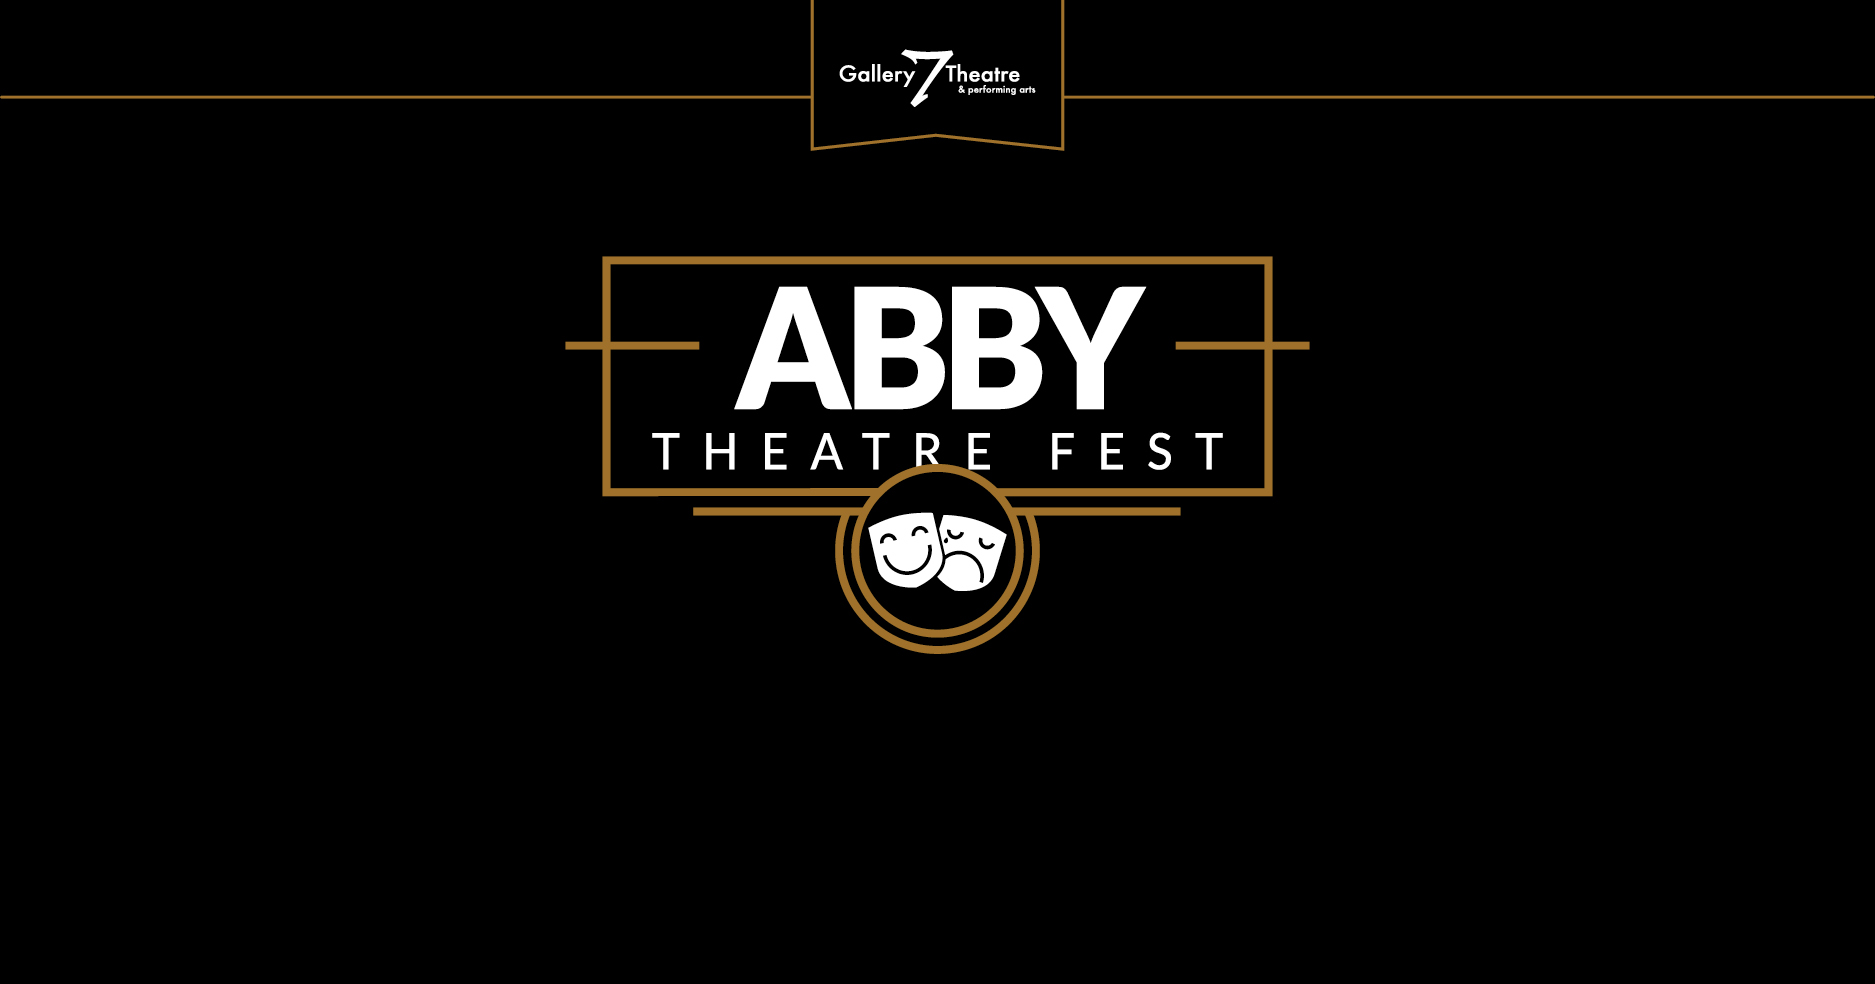 "Gallery 7 Theatre Opens ""Ordinary Heroes"" Theatre Season with Abby Theatre Fest"